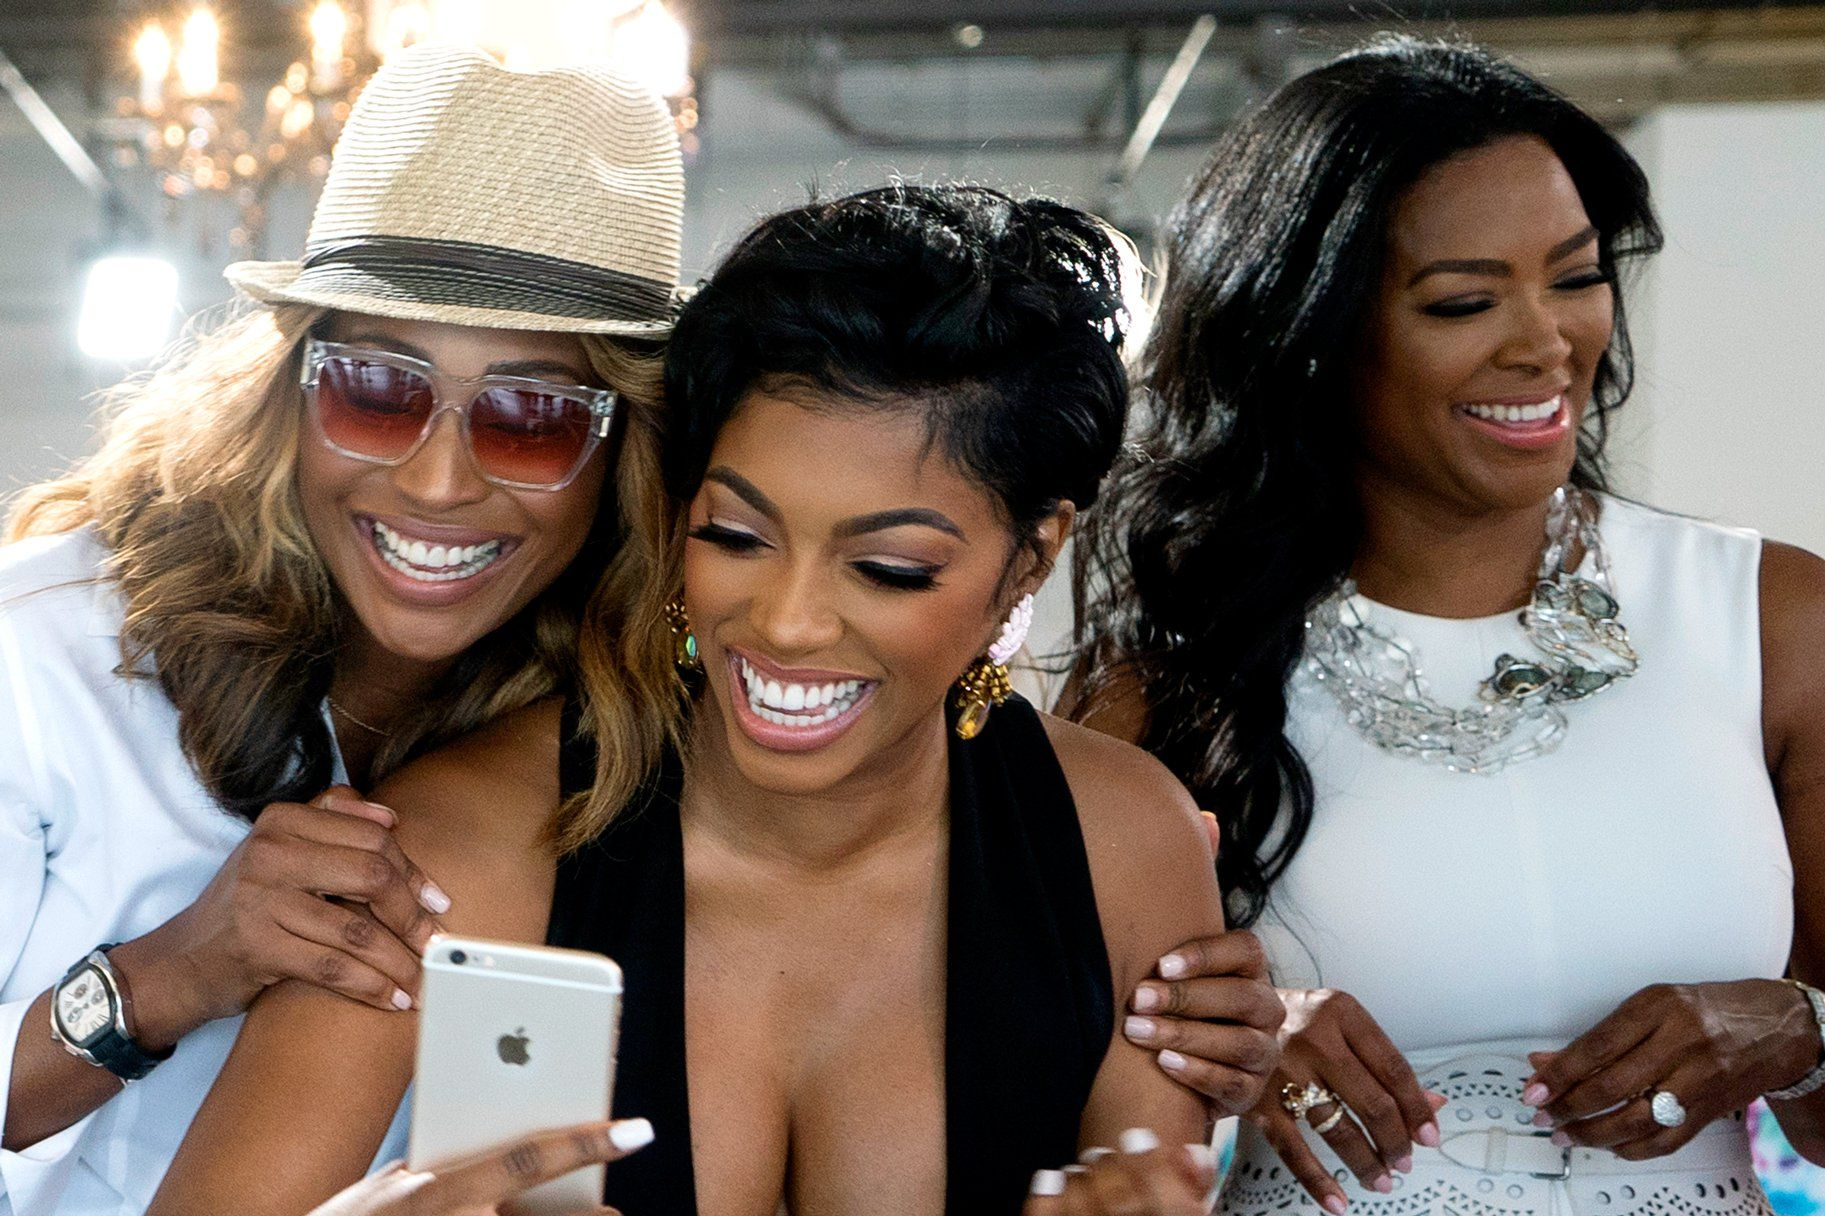 Porsha Williams Looks Amazing Together With Cynthia Bailey In Their Latest Video Together